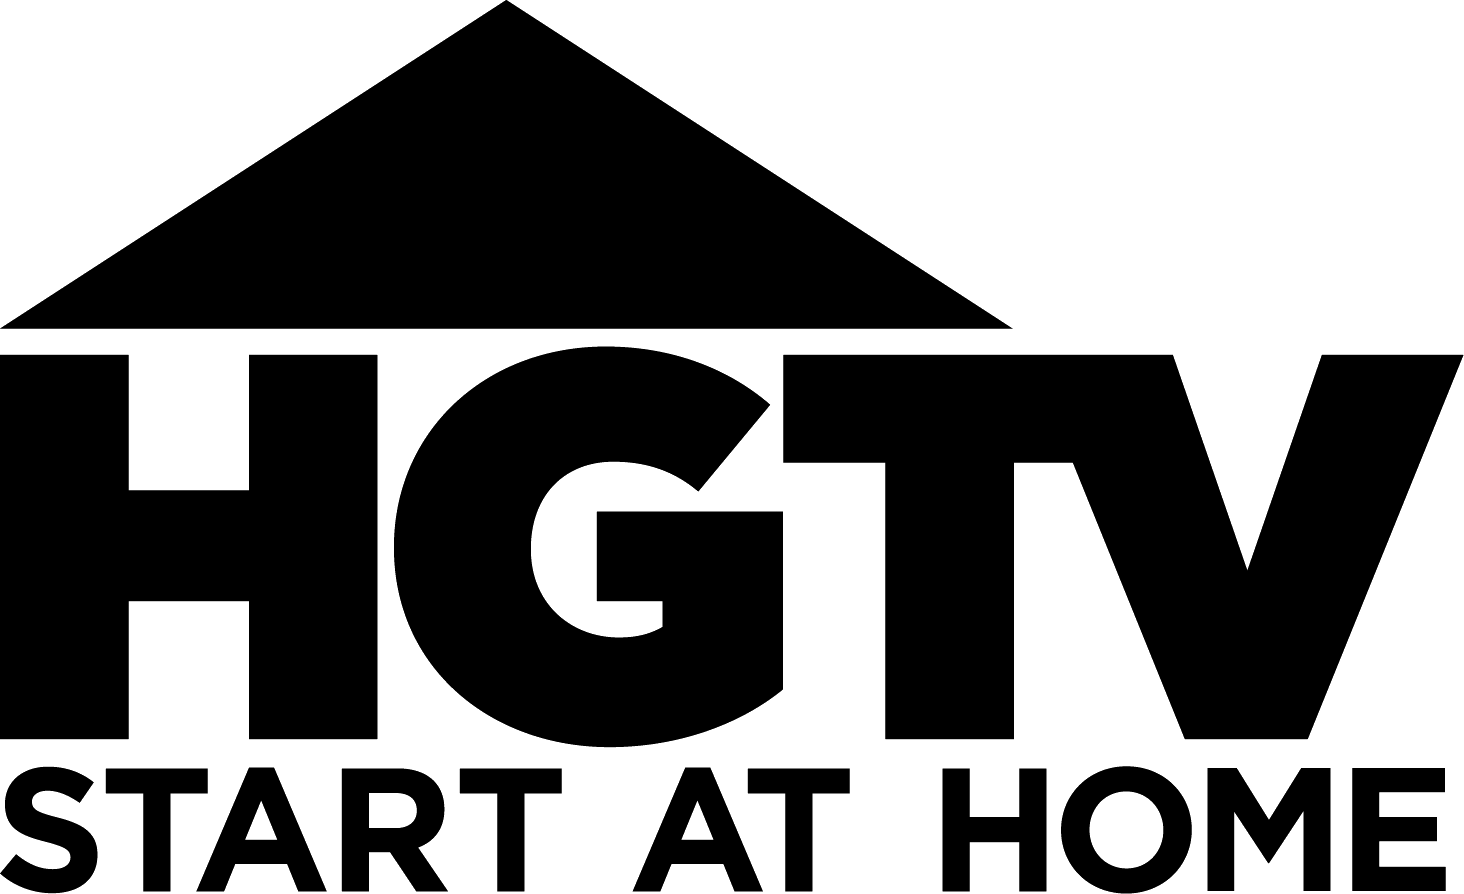 Hgtv logopedia the logo and branding site Home garden television